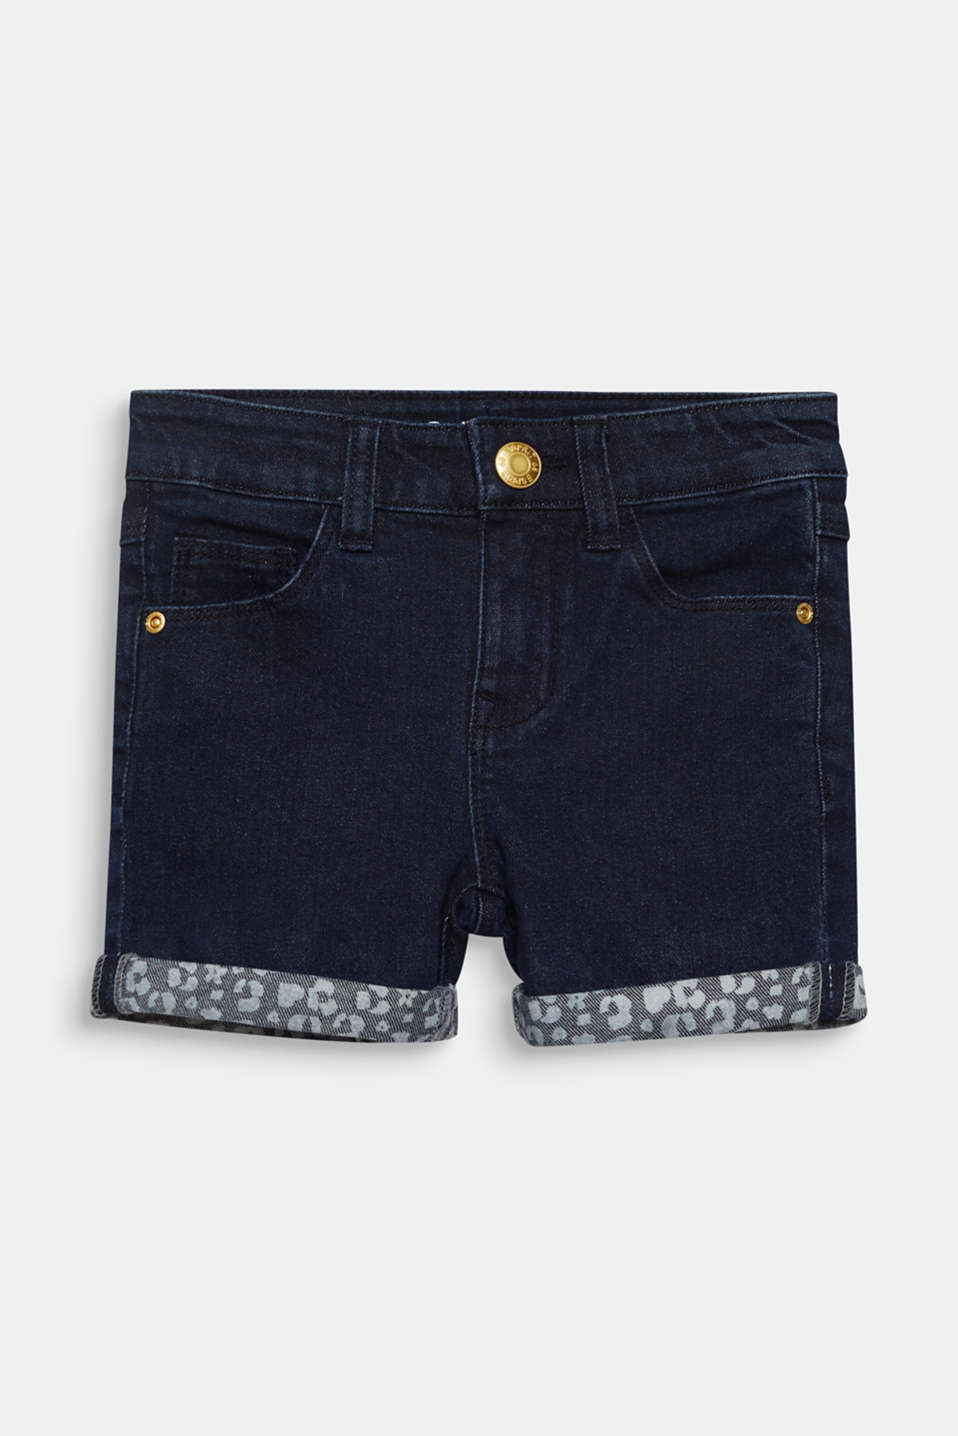 Esprit - Shorts in denim scuri con risvolti, vita regolabile